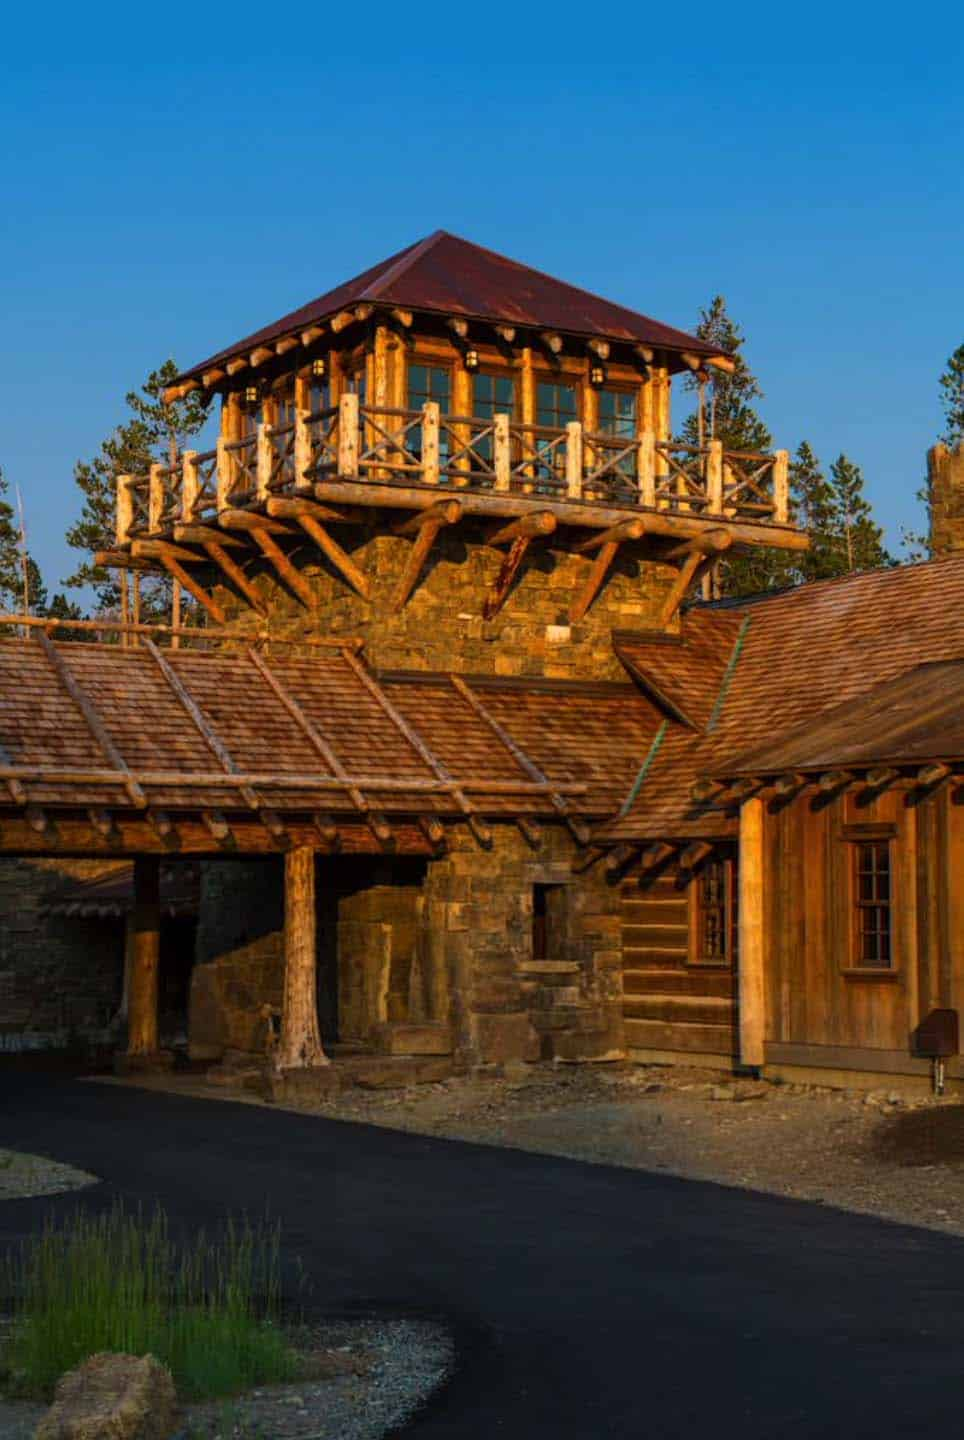 Rustic Log Home Design-Faure Halvorsen Architects-03-1 Kindesign